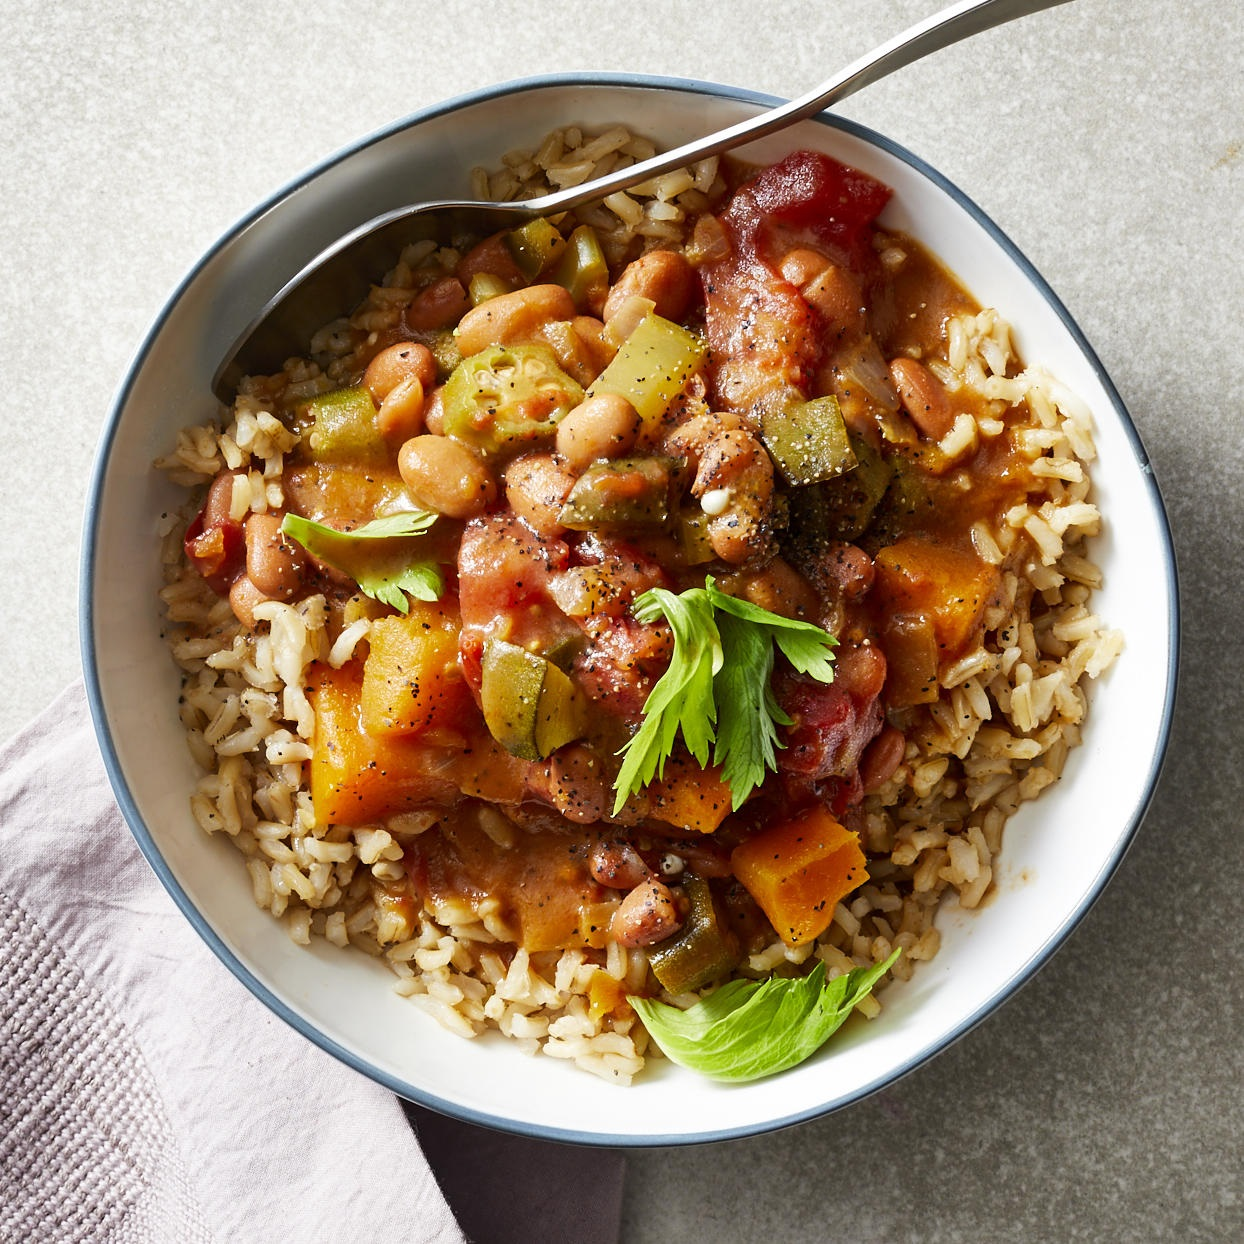 This flavorful vegan dinner is a veggie version of the Louisiana classic. It's chock-full of butternut squash, tomatoes, poblano peppers and okra, to name just a few. This vegetarian gumbo is a quick dinner packed with flavor and spice that's done in only 30 minutes. To make it a meal, serve it with cornbread drizzled with olive oil. Source: EatingWell.com, December 2019